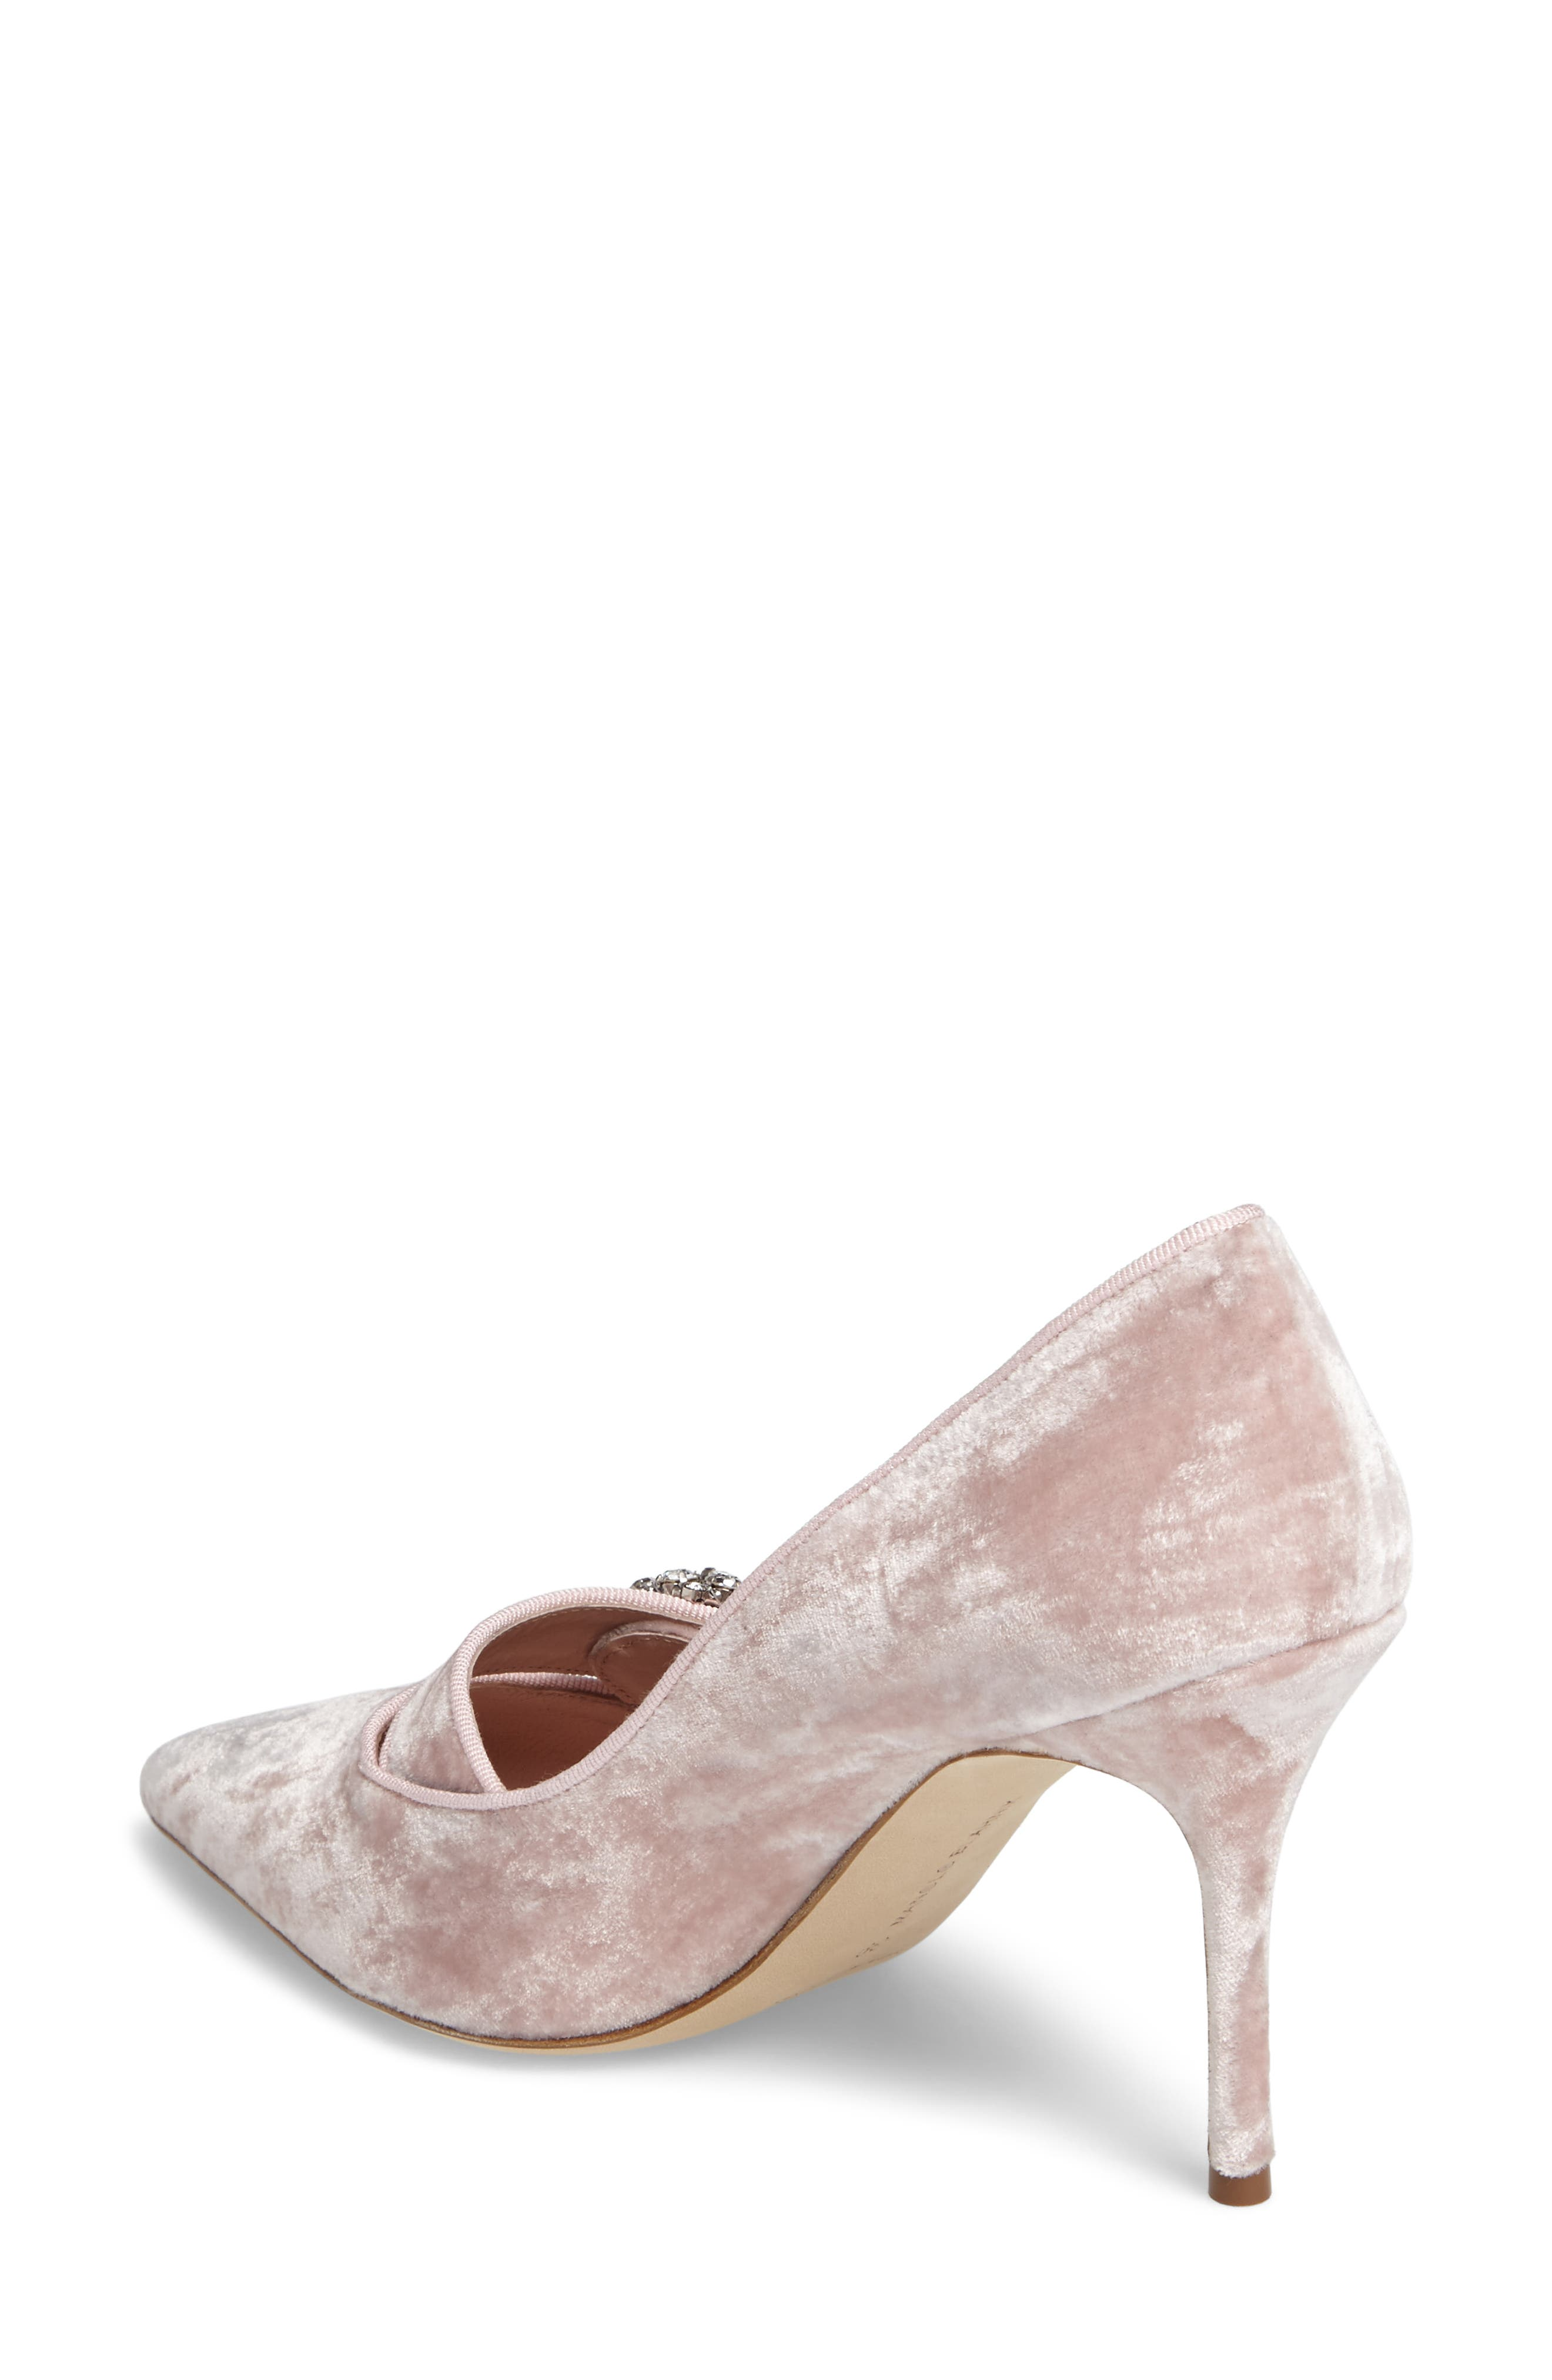 Decebalo Pump,                             Alternate thumbnail 2, color,                             Blush Velvet